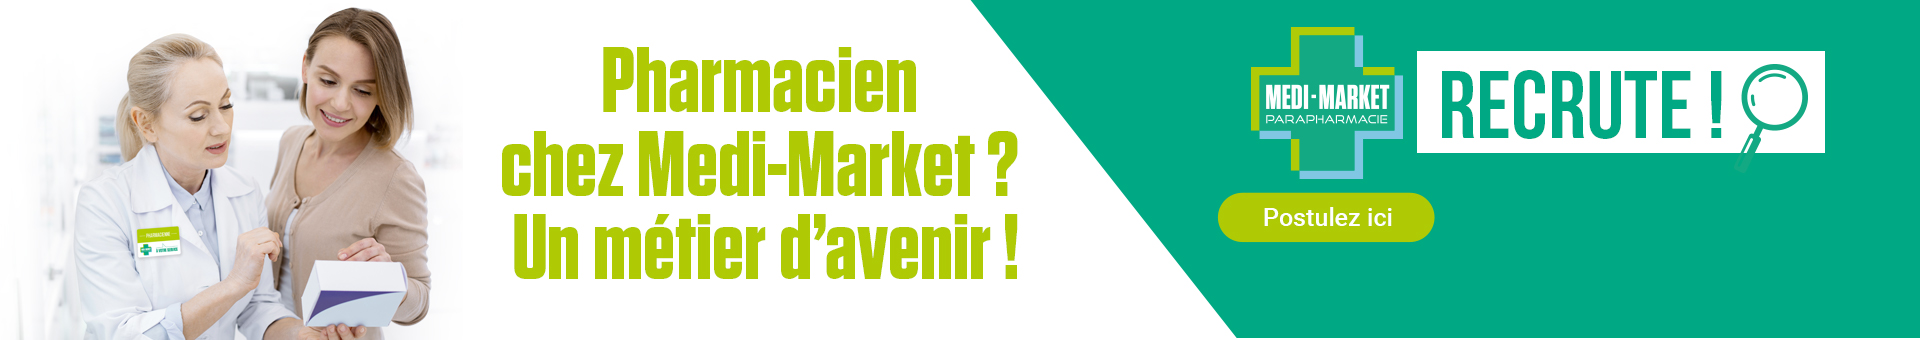 Recrutement pharmaciens_Medi-Market Banner_Carrousel_385x613_FR.jpg